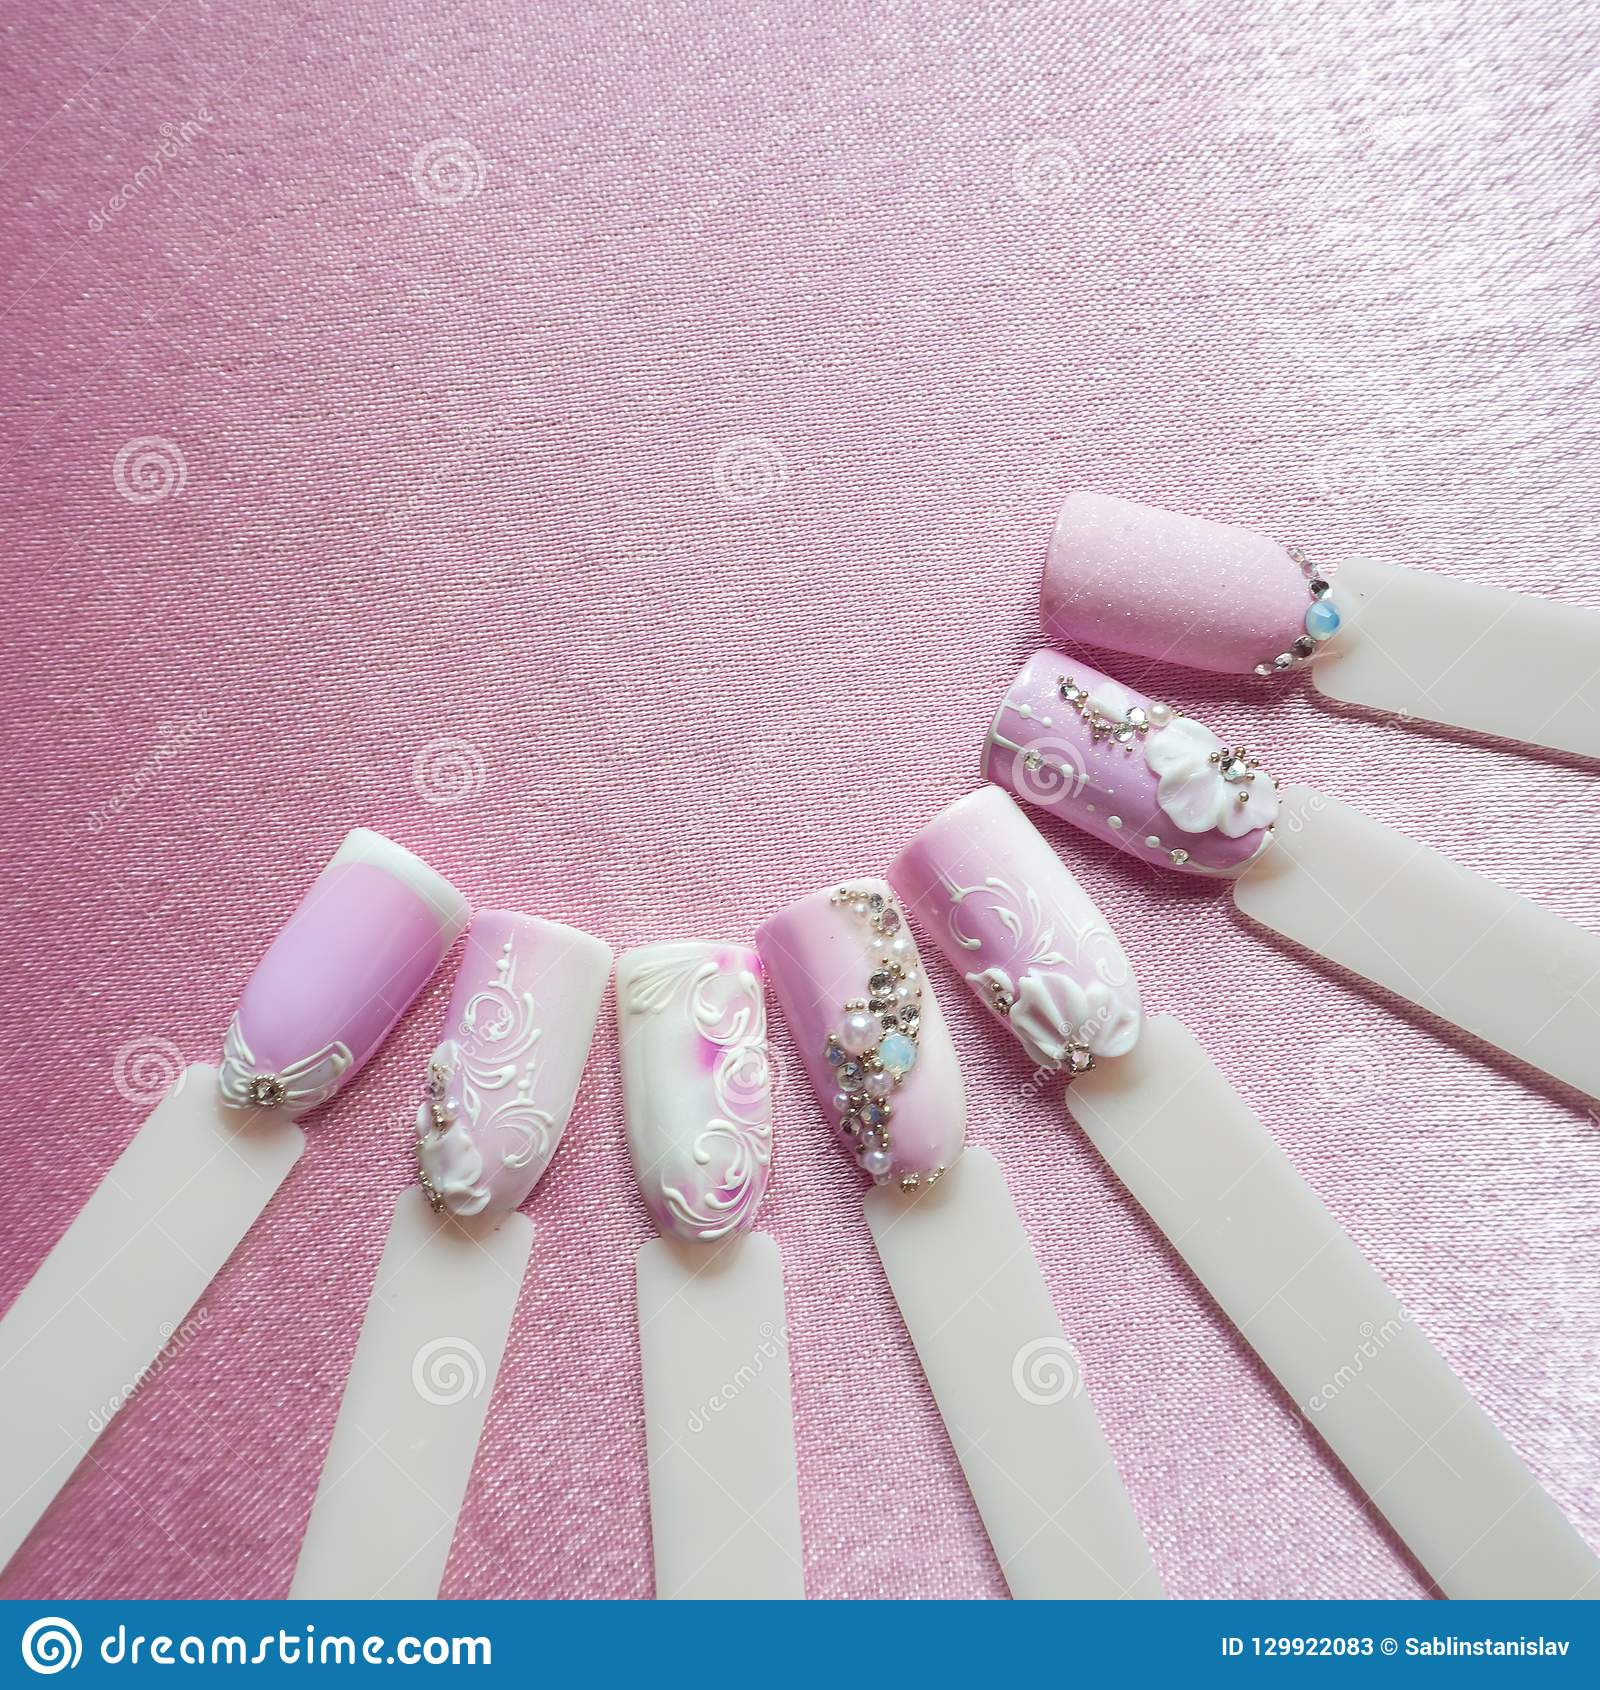 Nail art design with rhinestones on pink background.